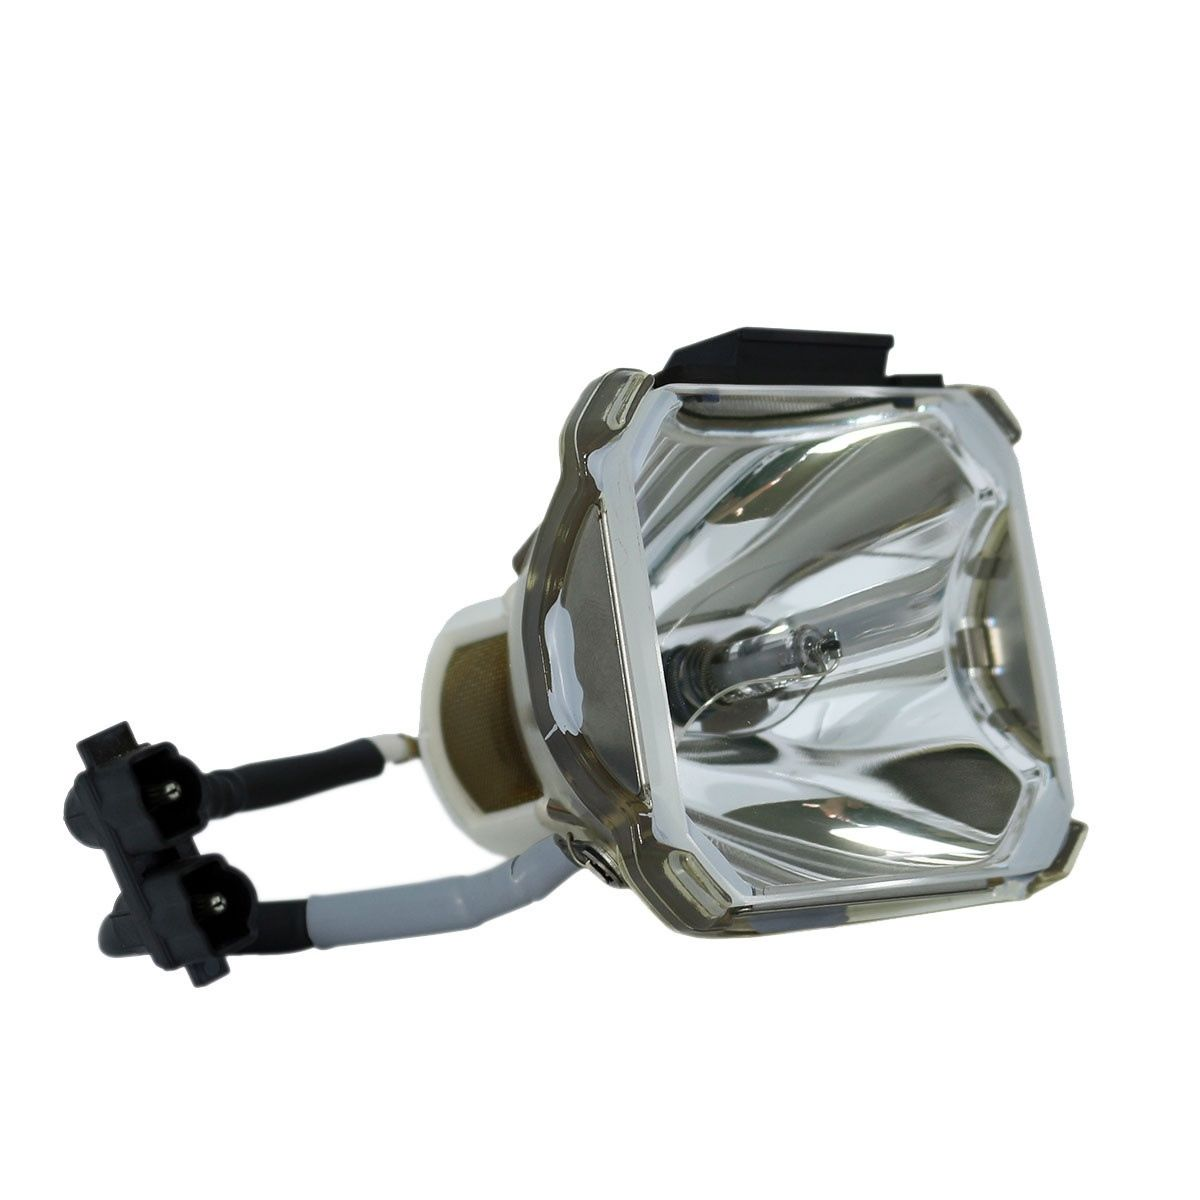 Compatible Bare bulb SP-LAMP-015 lamp for Infocus LP840 / ASK C440 / PROXIMA DP8400x Projector Bulbs Lamp Without housing free shipping compatible bare projector lamp for ask proxima s1390 s1380 c2270 c2260